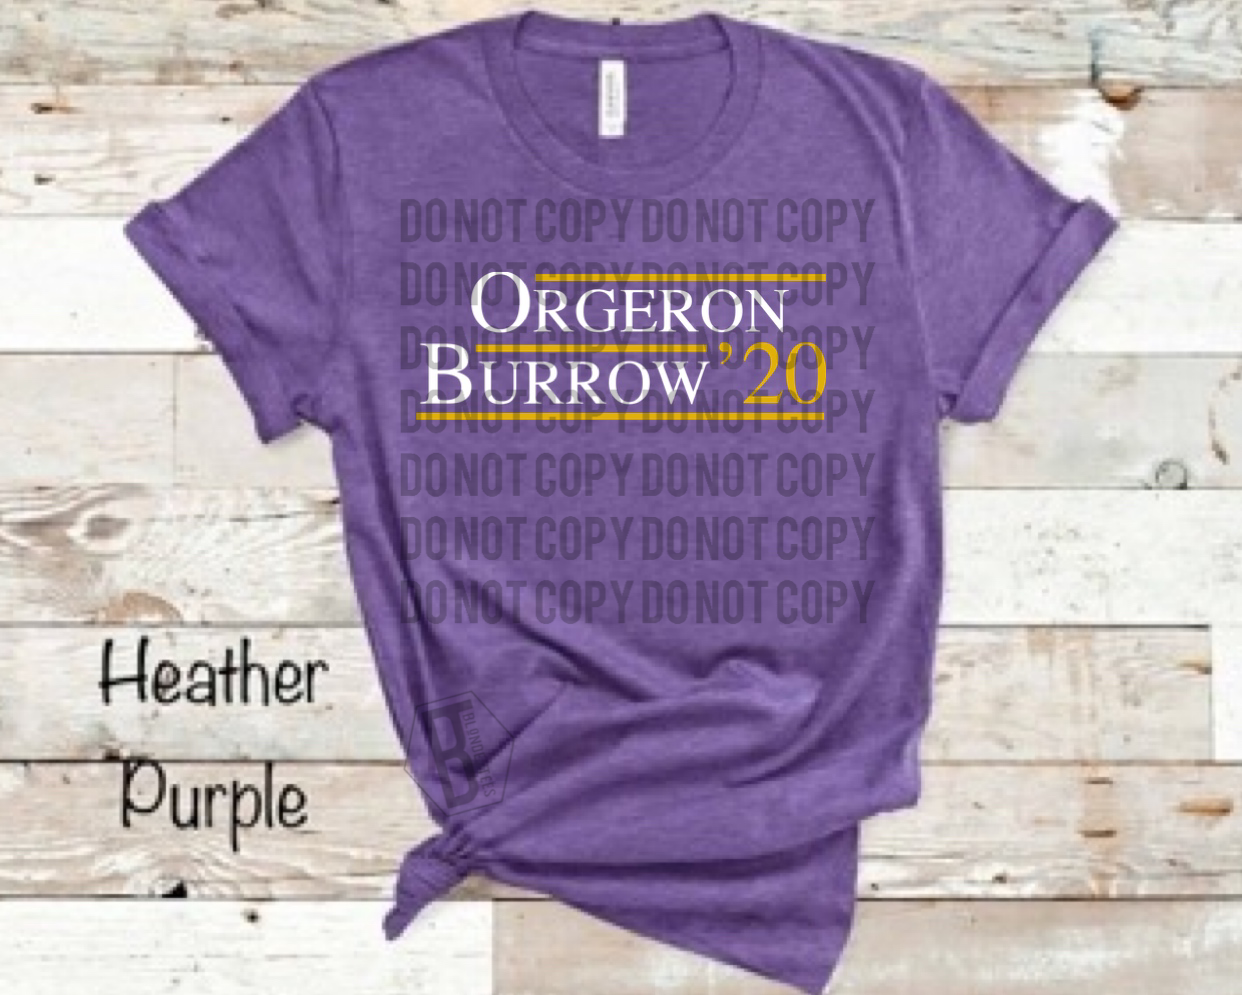 Orgeron Burrow 20 Lsu Fashion Graphictees Graphic Tees Momtees Boutique Shirts Funtees Blondetees Hust In 2020 Blonde Tees Cute Graphic Tees Graphic Tees